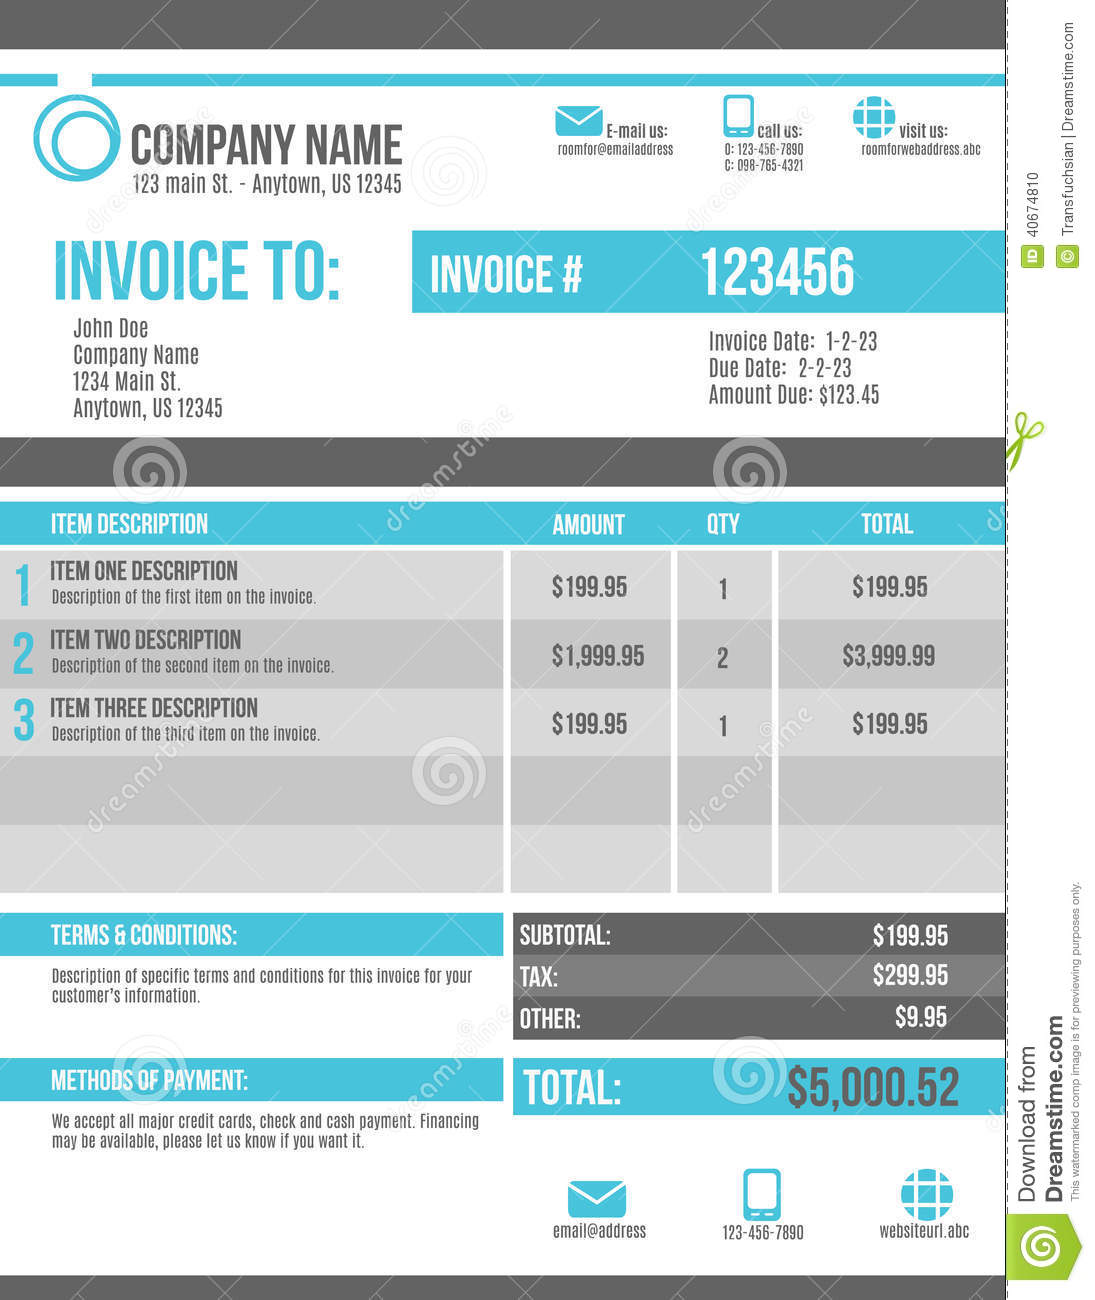 More similar stock images of ` Customizable Invoice template design `